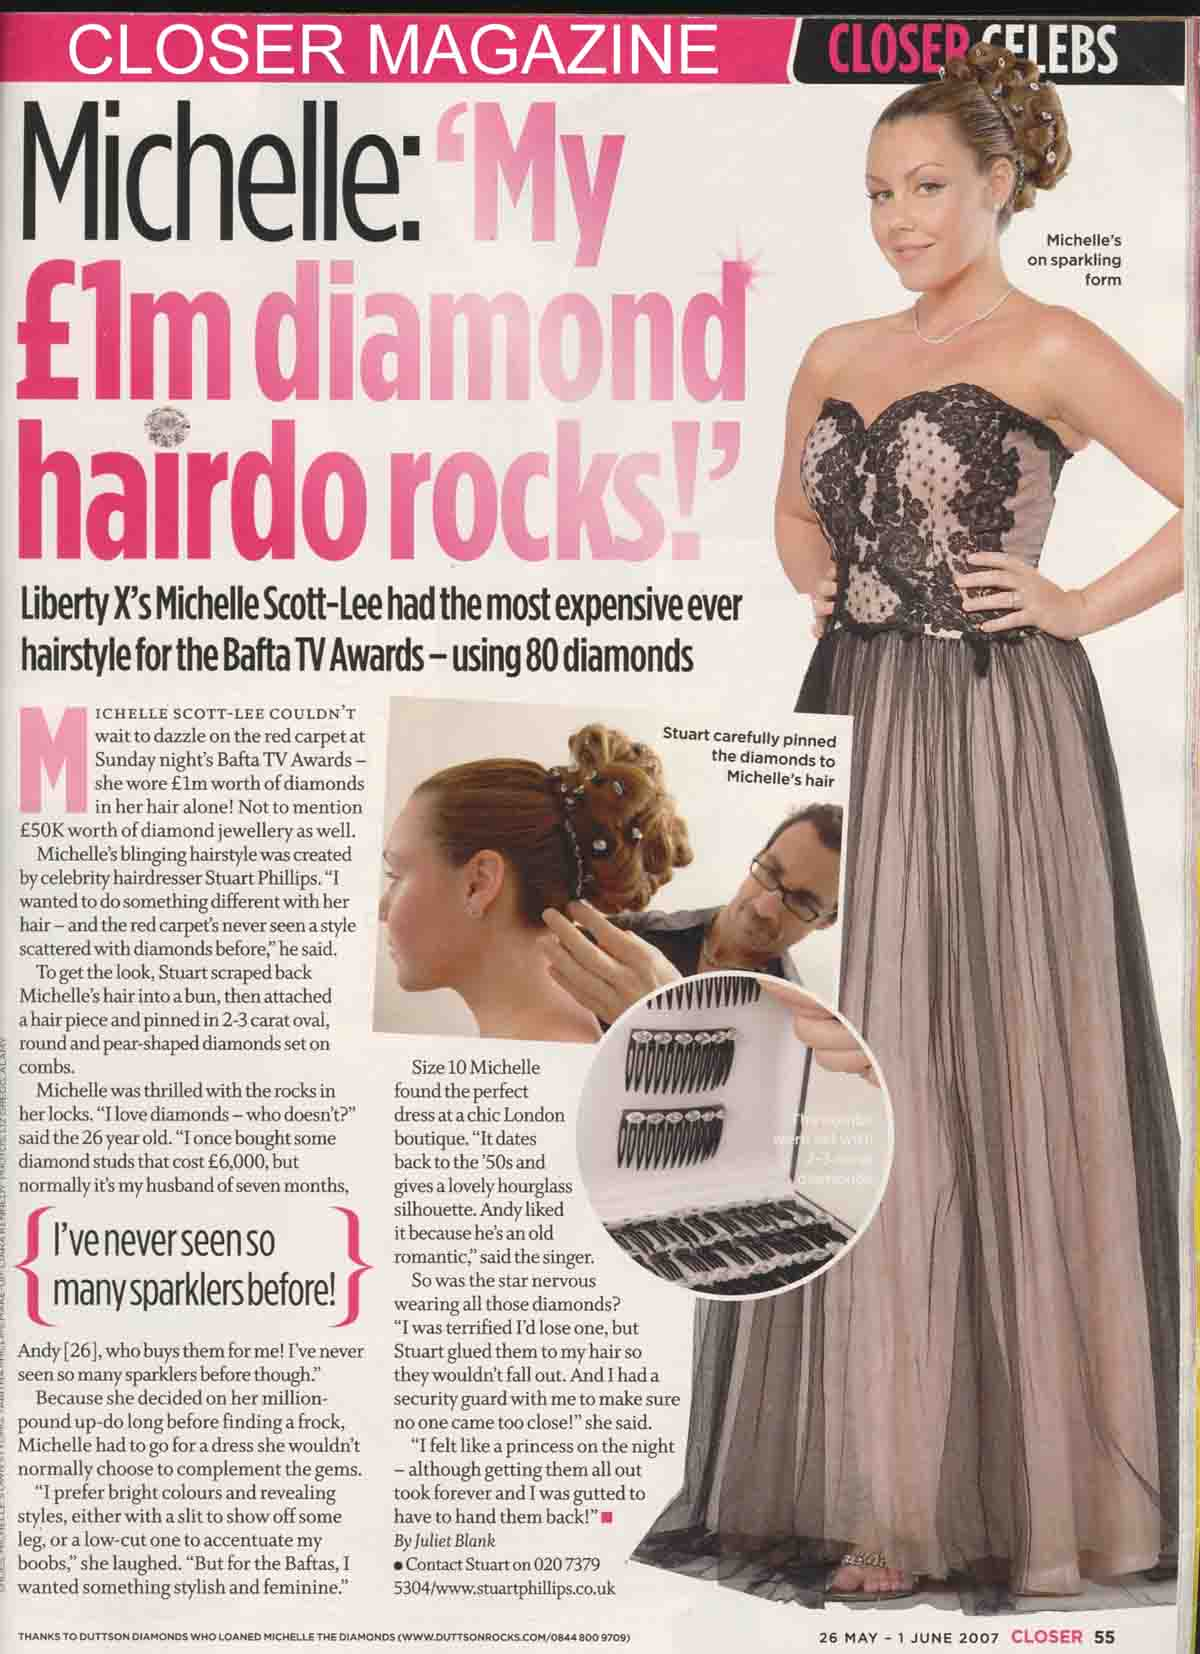 Confessions of a celebrity hairdresser, Part 2 – Hair Blog 2 copy